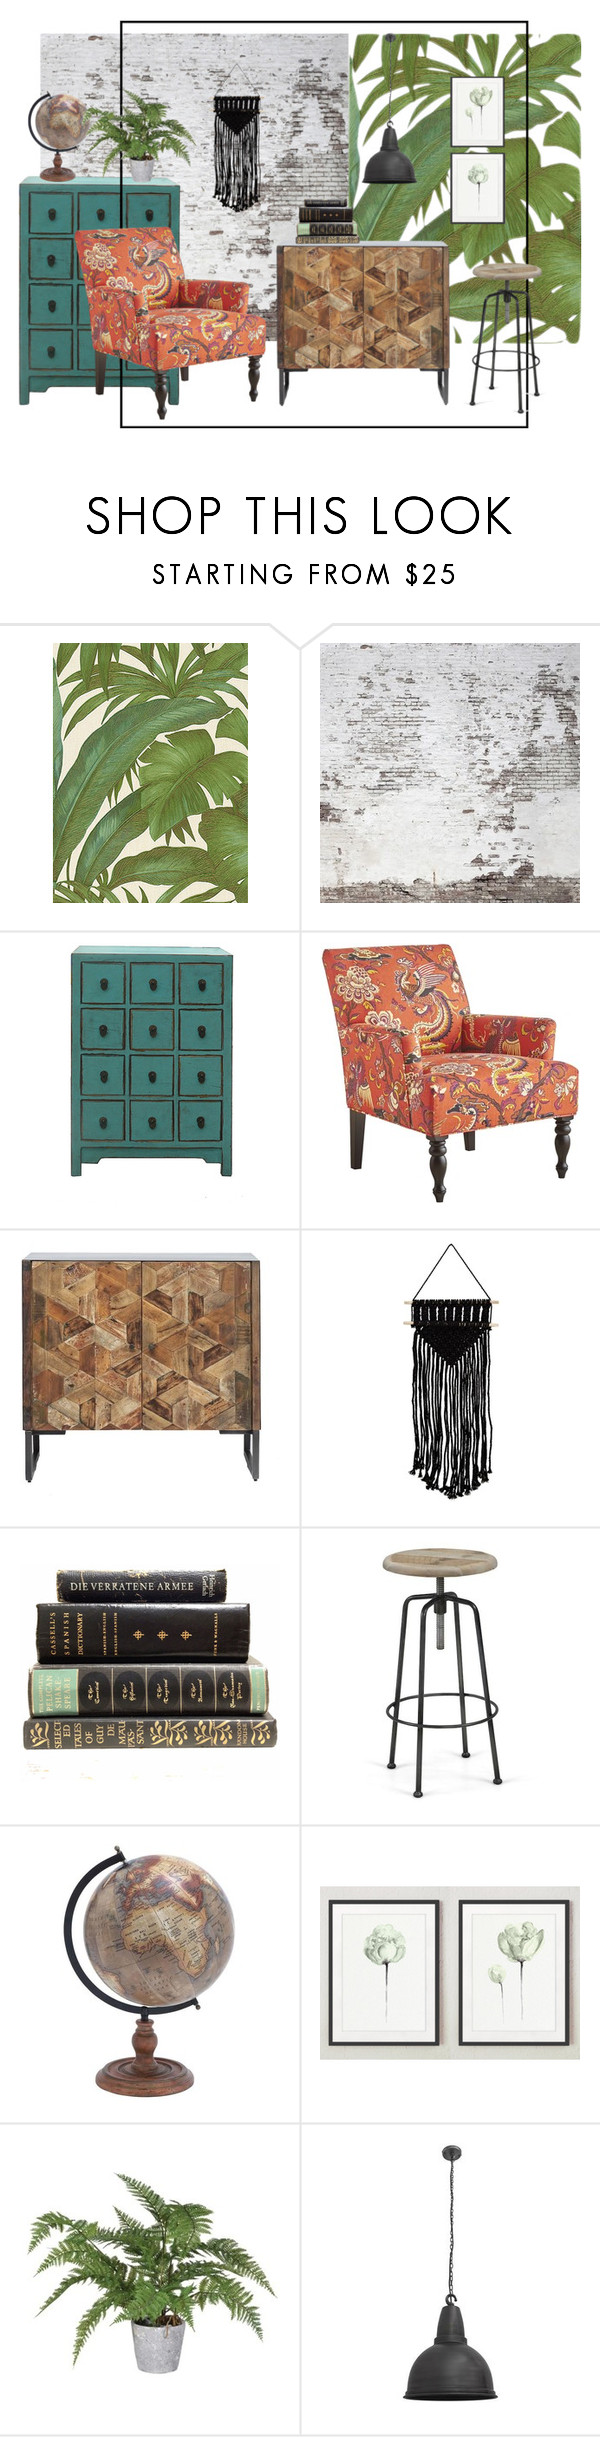 """""""Industrial meets boho"""" by helihannus ❤ liked on Polyvore featuring interior, interiors, interior design, home, home decor, interior decorating, Versace, Pier 1 Imports and NuCasa"""